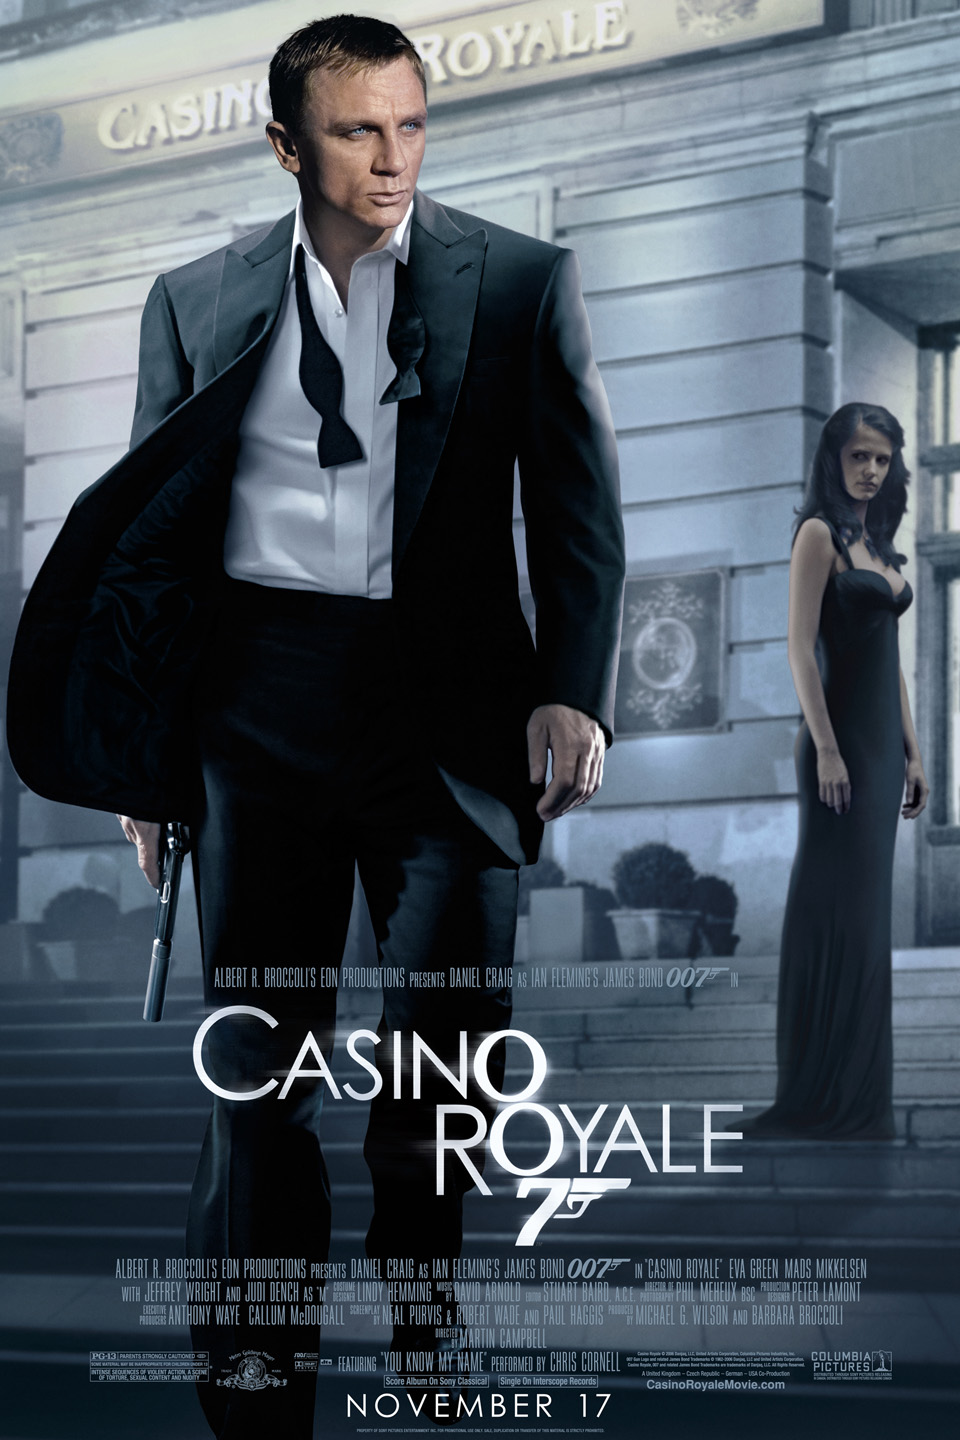 casino royale james bond full movie online free spin games